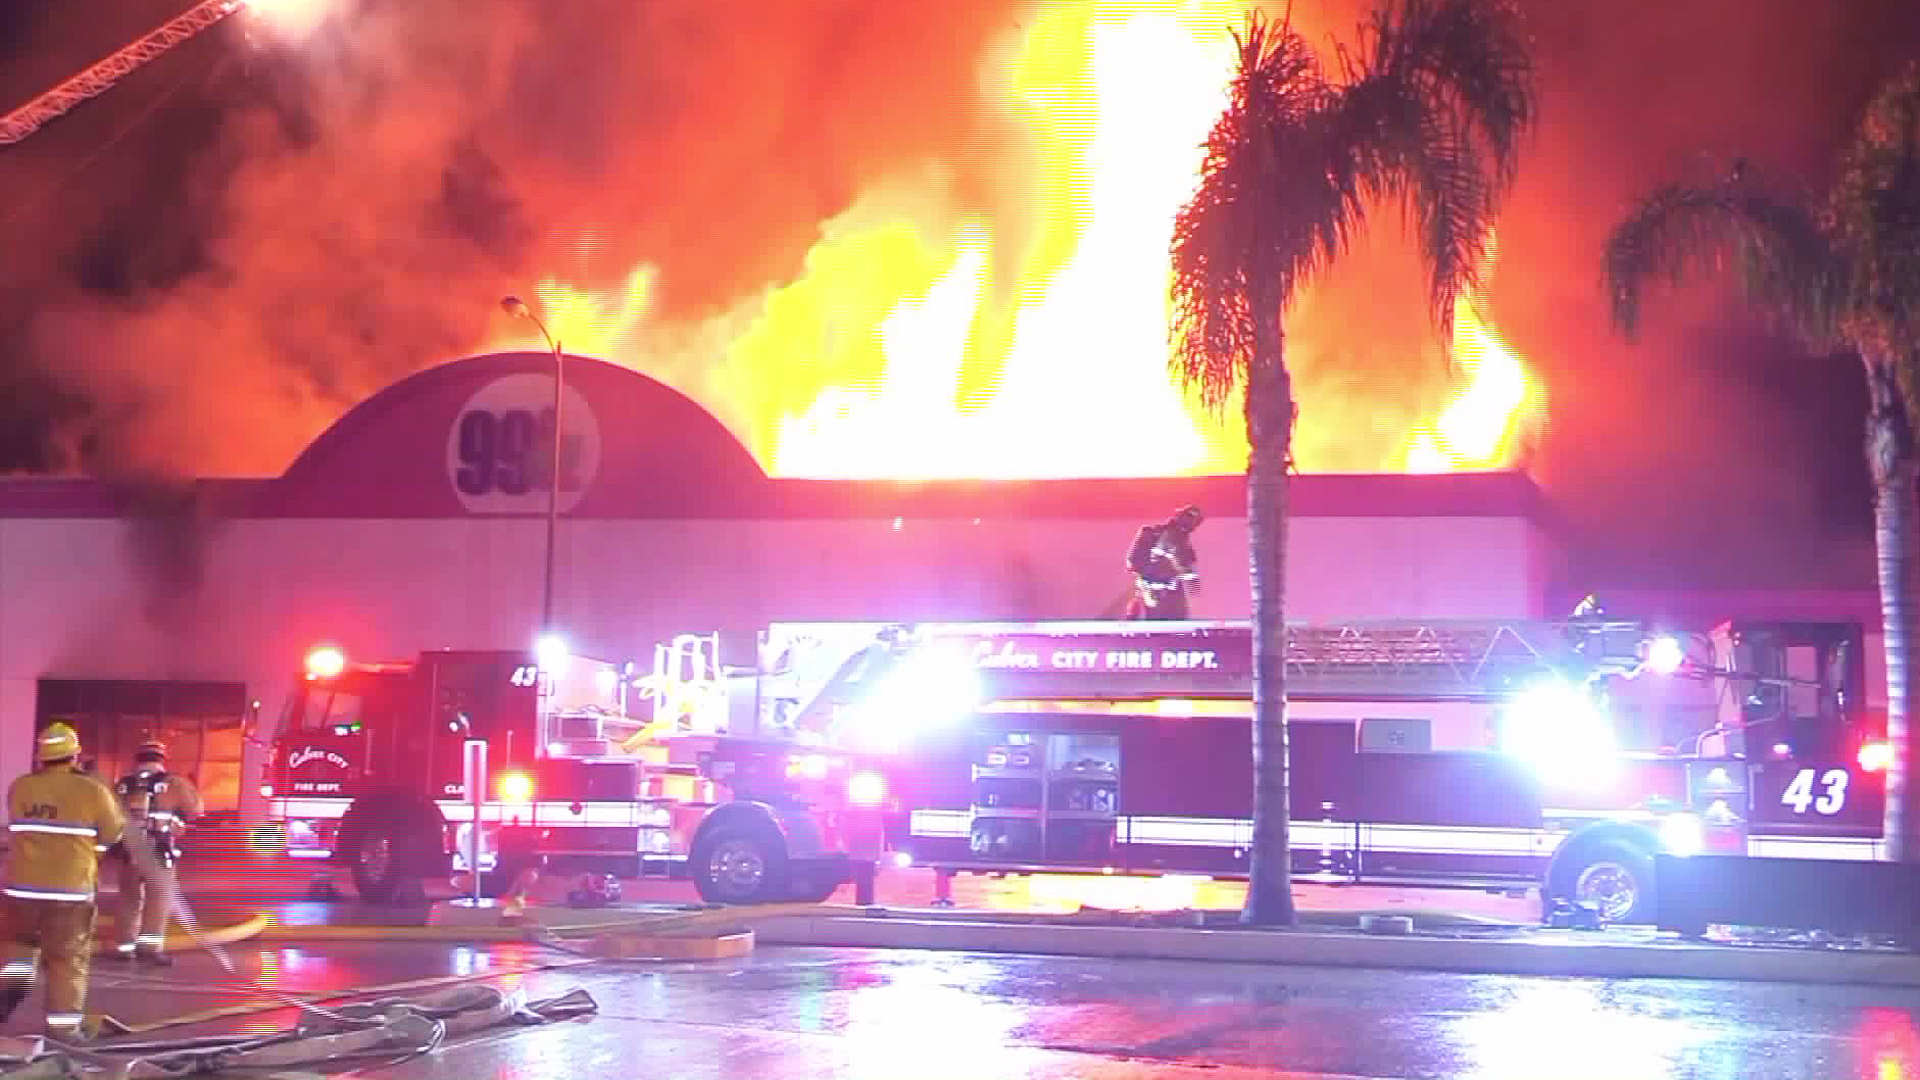 Firefighters battle a blaze at a 99 Cents Only store in Culver City on July 22, 2019. (Credit: ANG News)